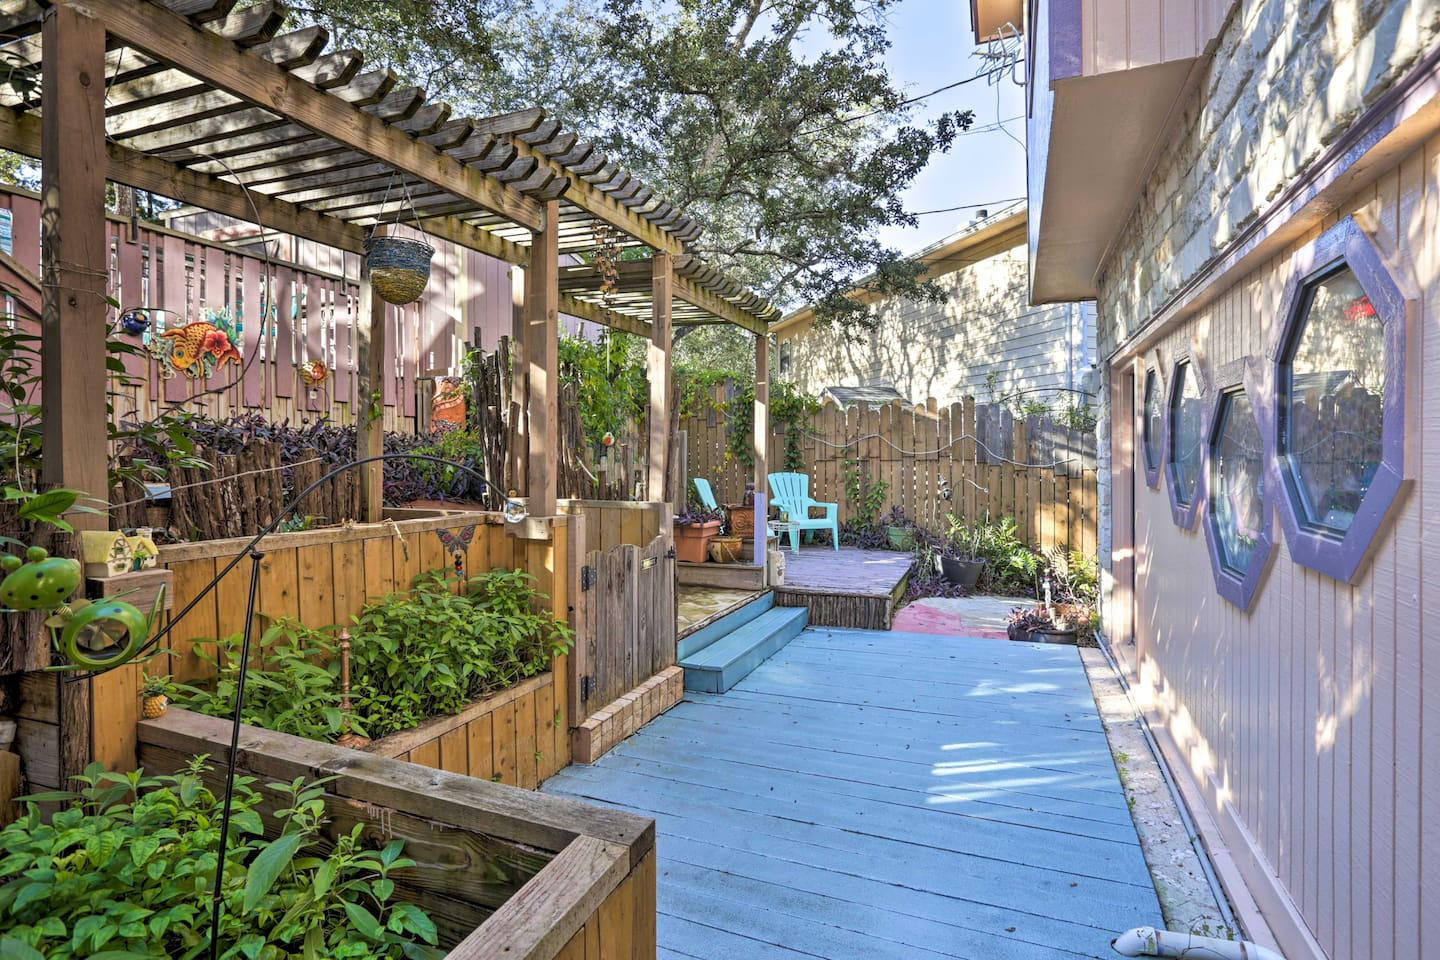 The 1,200-square-foot unit includes 2 bedrooms, 2 bathrooms, & a lovely patio.